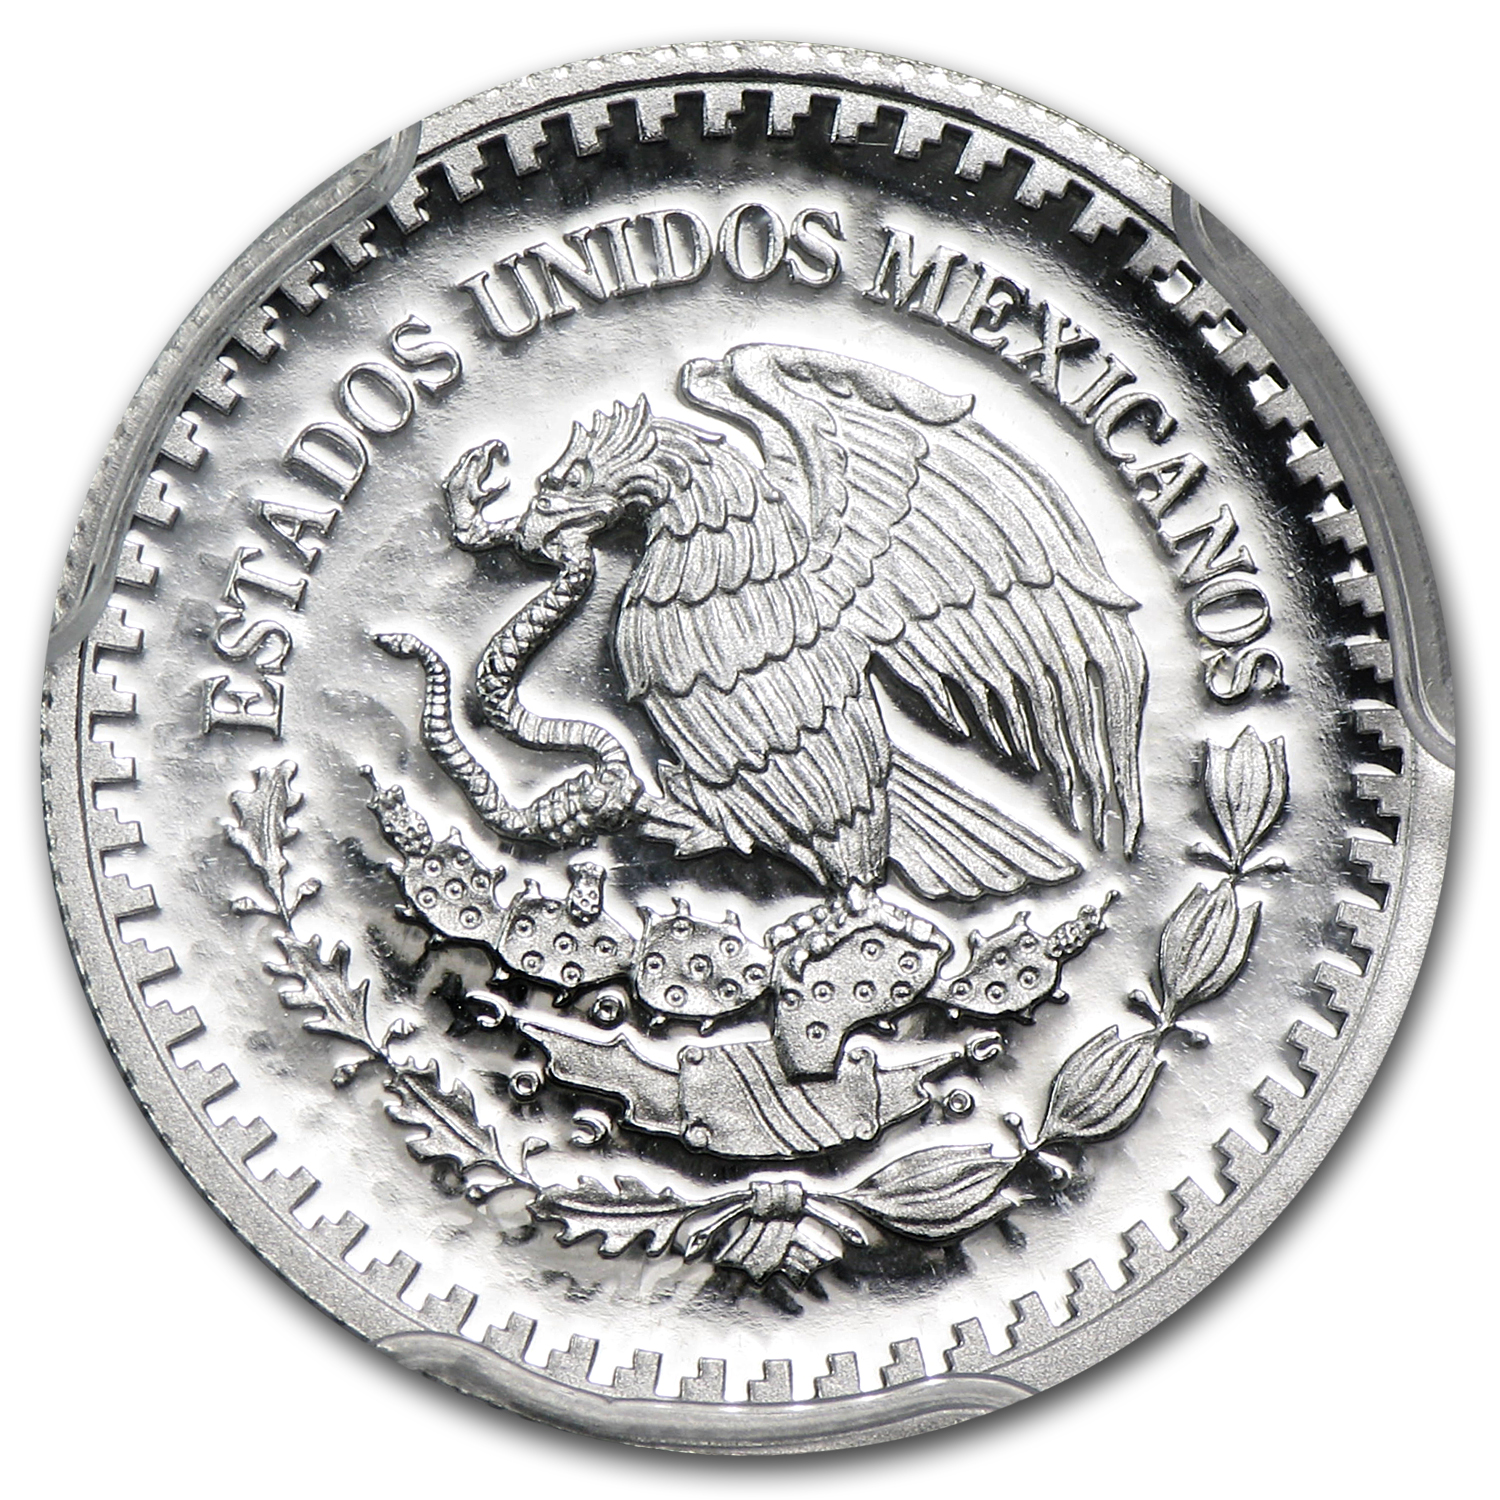 2011 Mexico 1/10 oz Proof Silver Libertad PR-69 PCGS